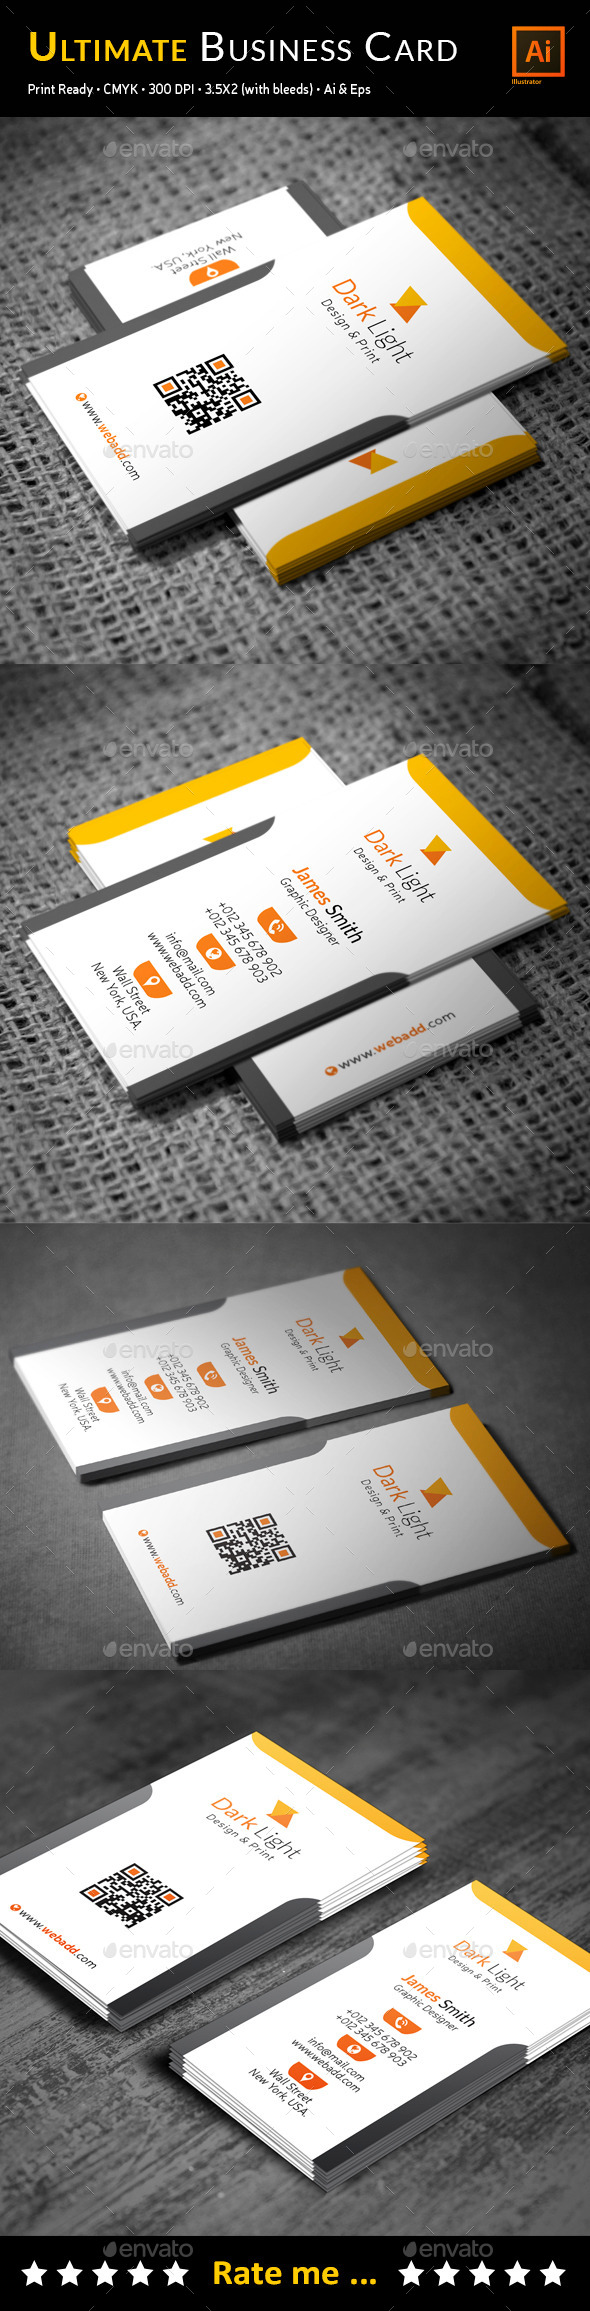 GraphicRiver Ultimate Business Card 11978245